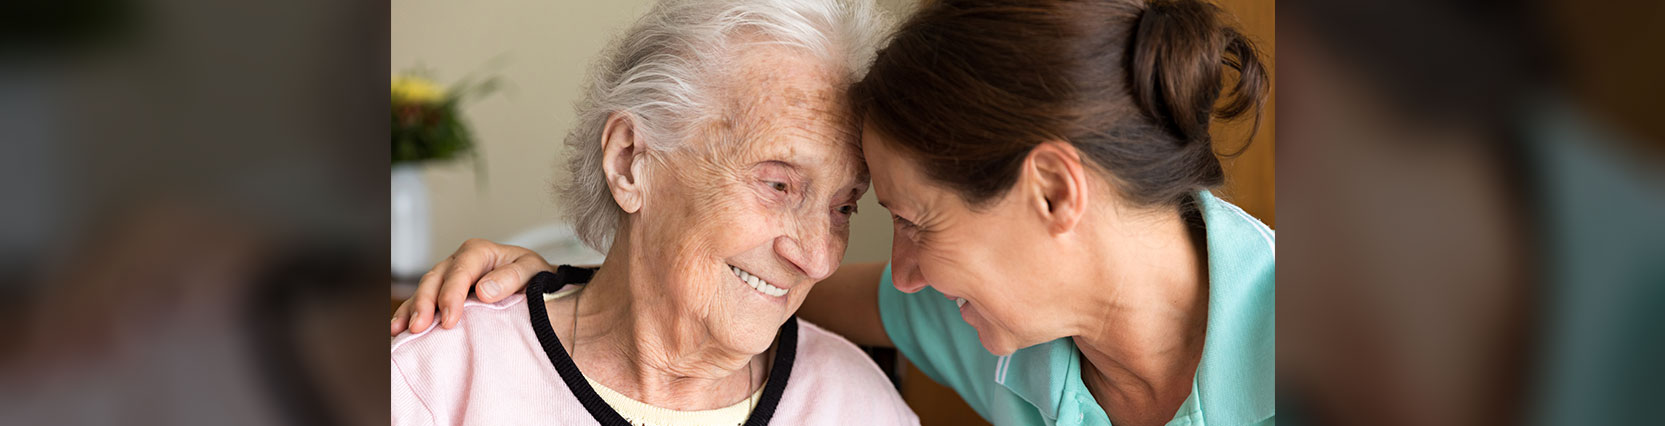 Elderly Care and Senior Assistance